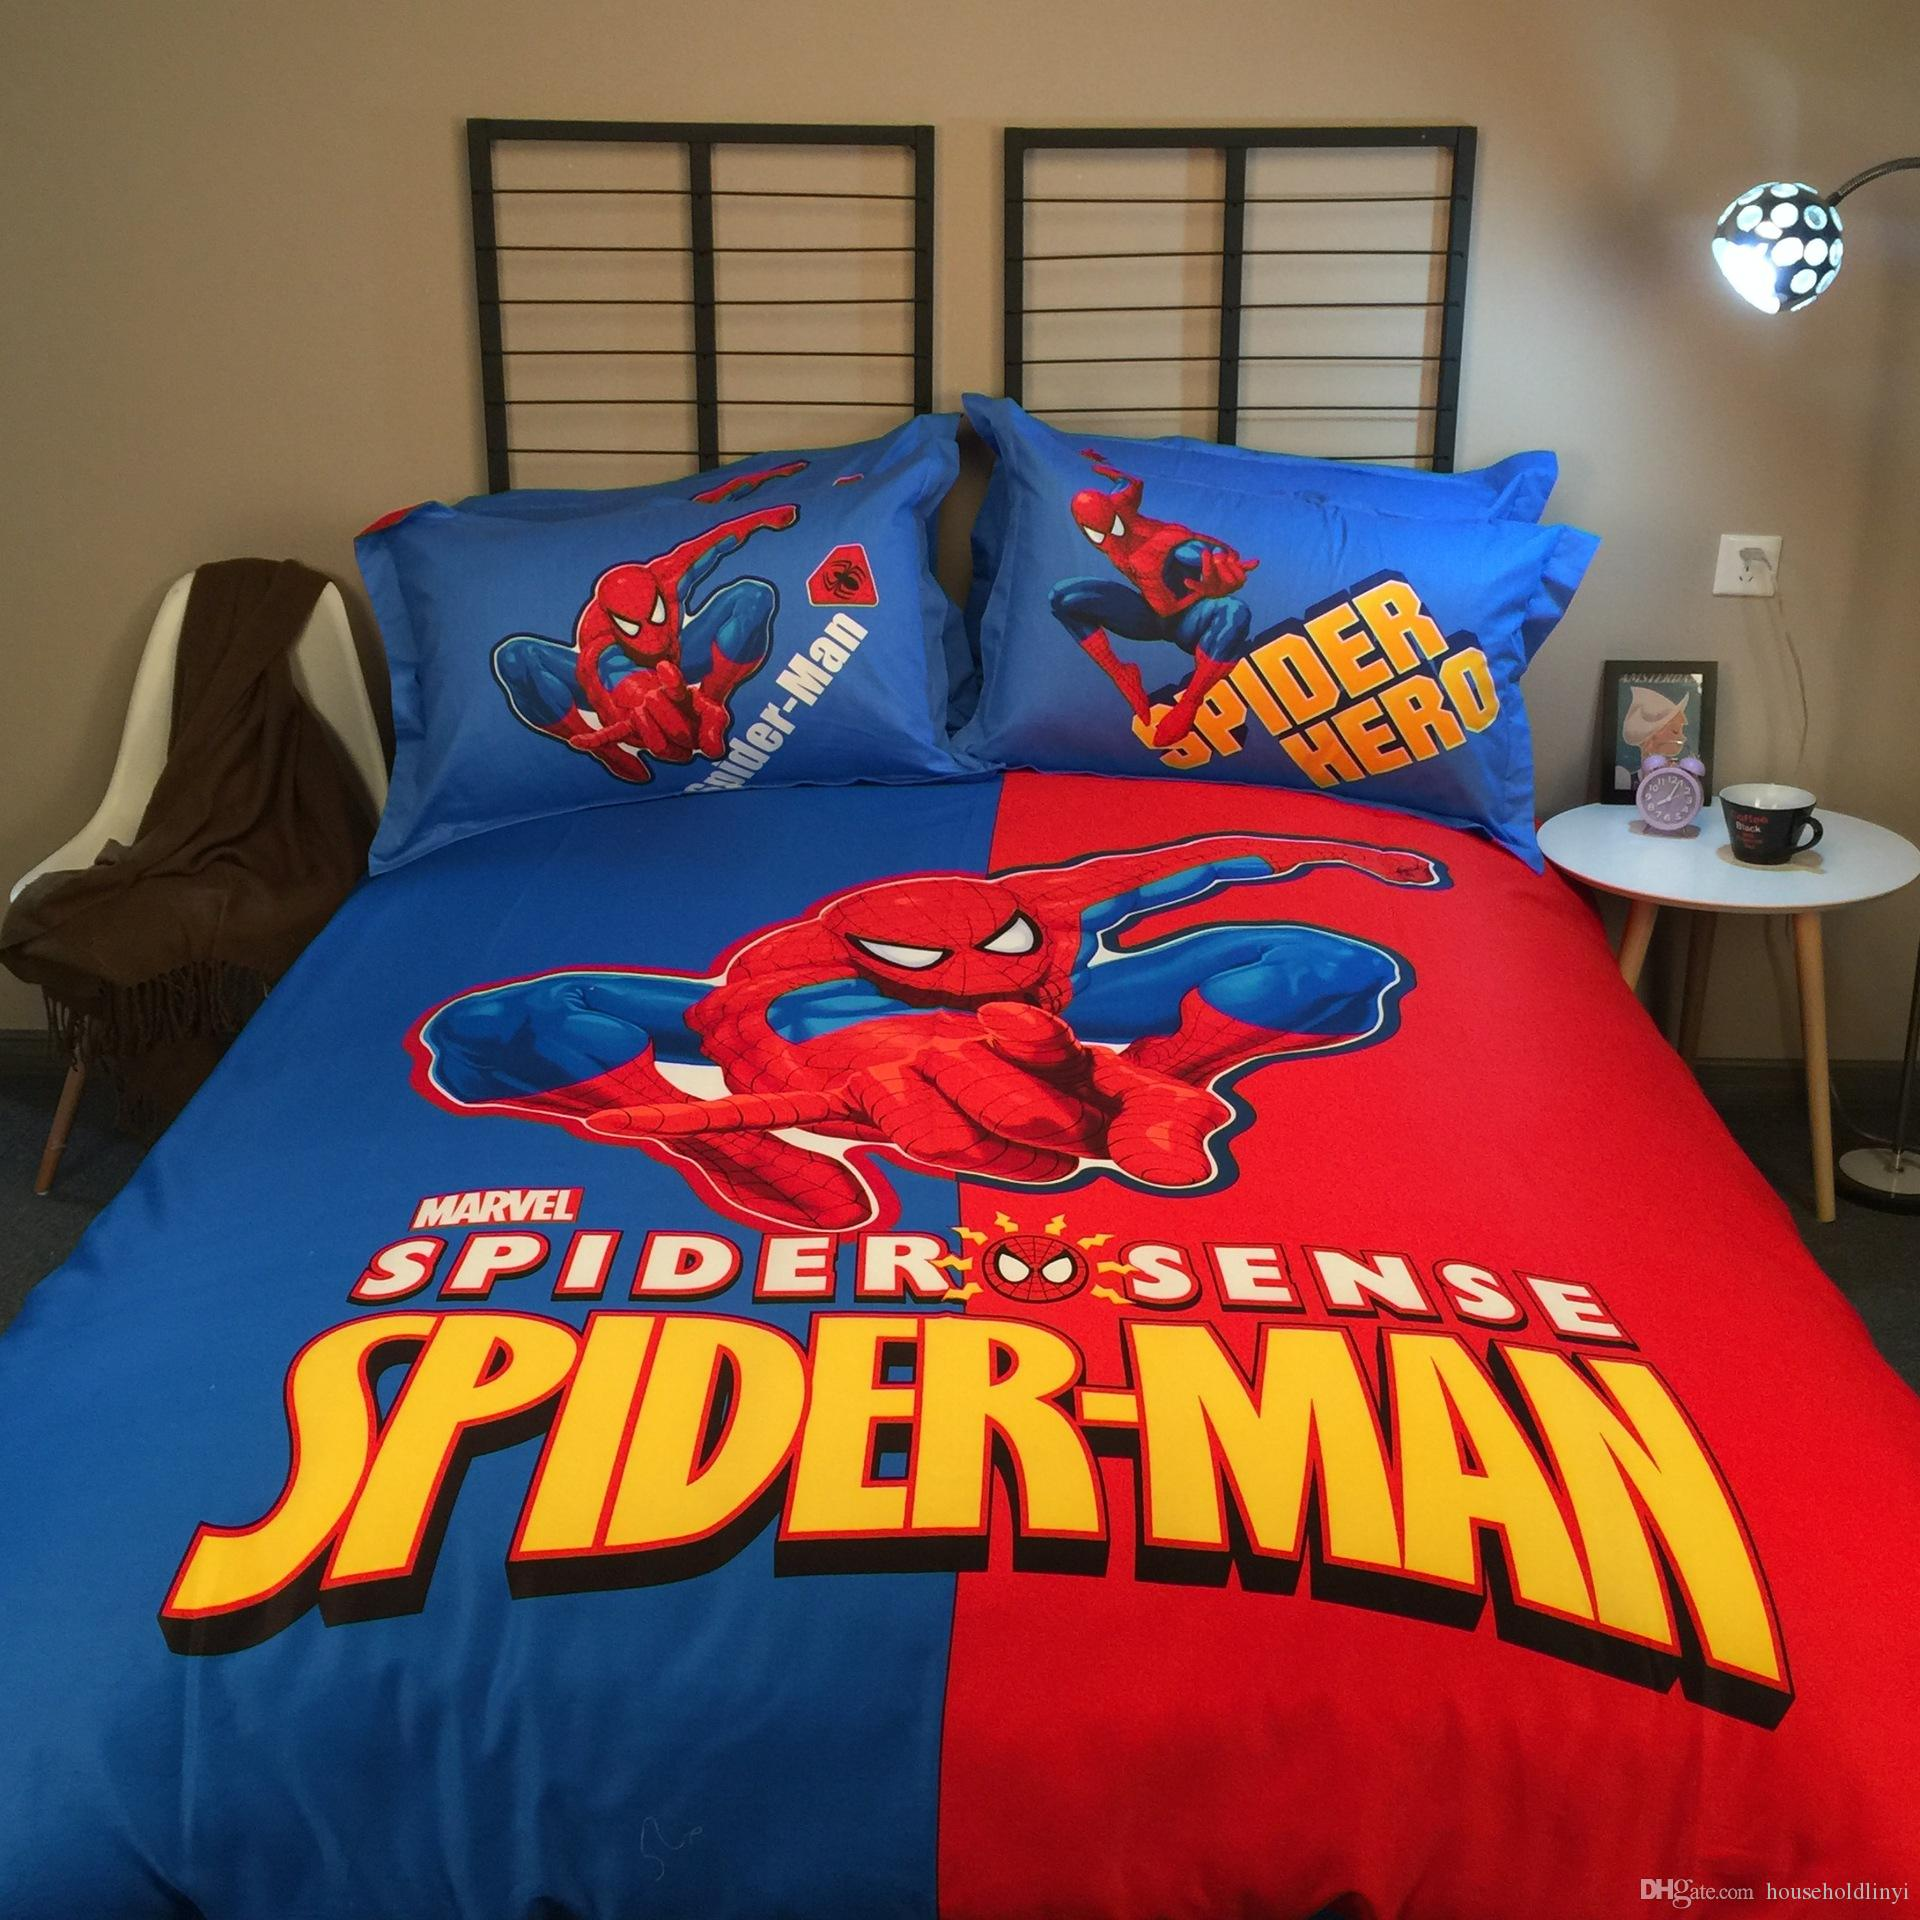 Cotton Spiderman 3d Bedding Set Bed Sheets Sets Bedding Luxury Bedding Hero  Theme Hotel Bed Linen Bed Sheets Duvet Linen Covers Bedding Sets Sale Teens  ...